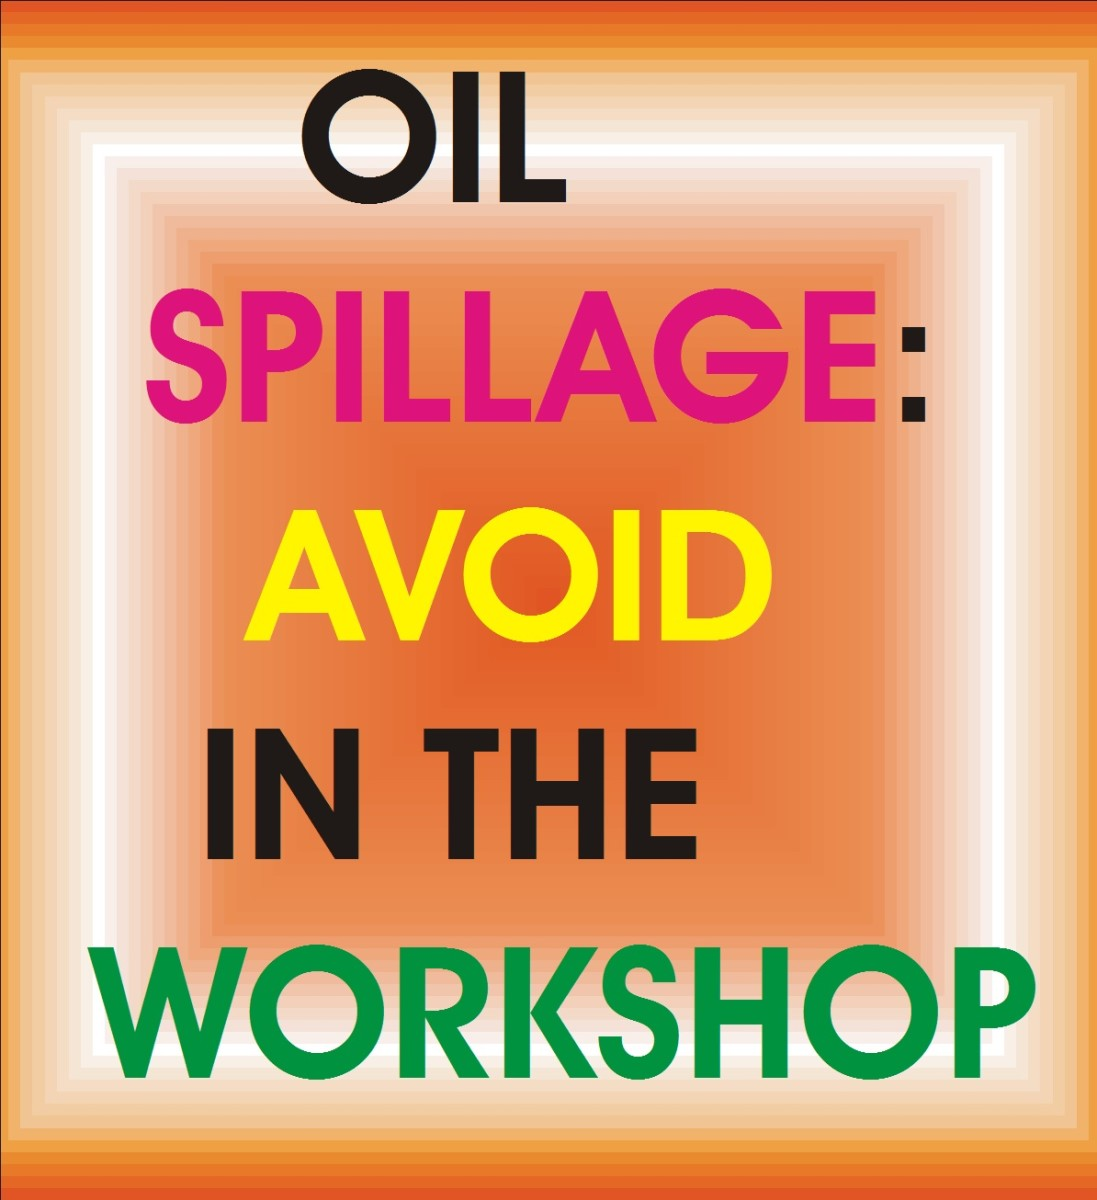 Safety precautions in a workshop, safety, precautions. The illustration is on the prevention of oil spillage.